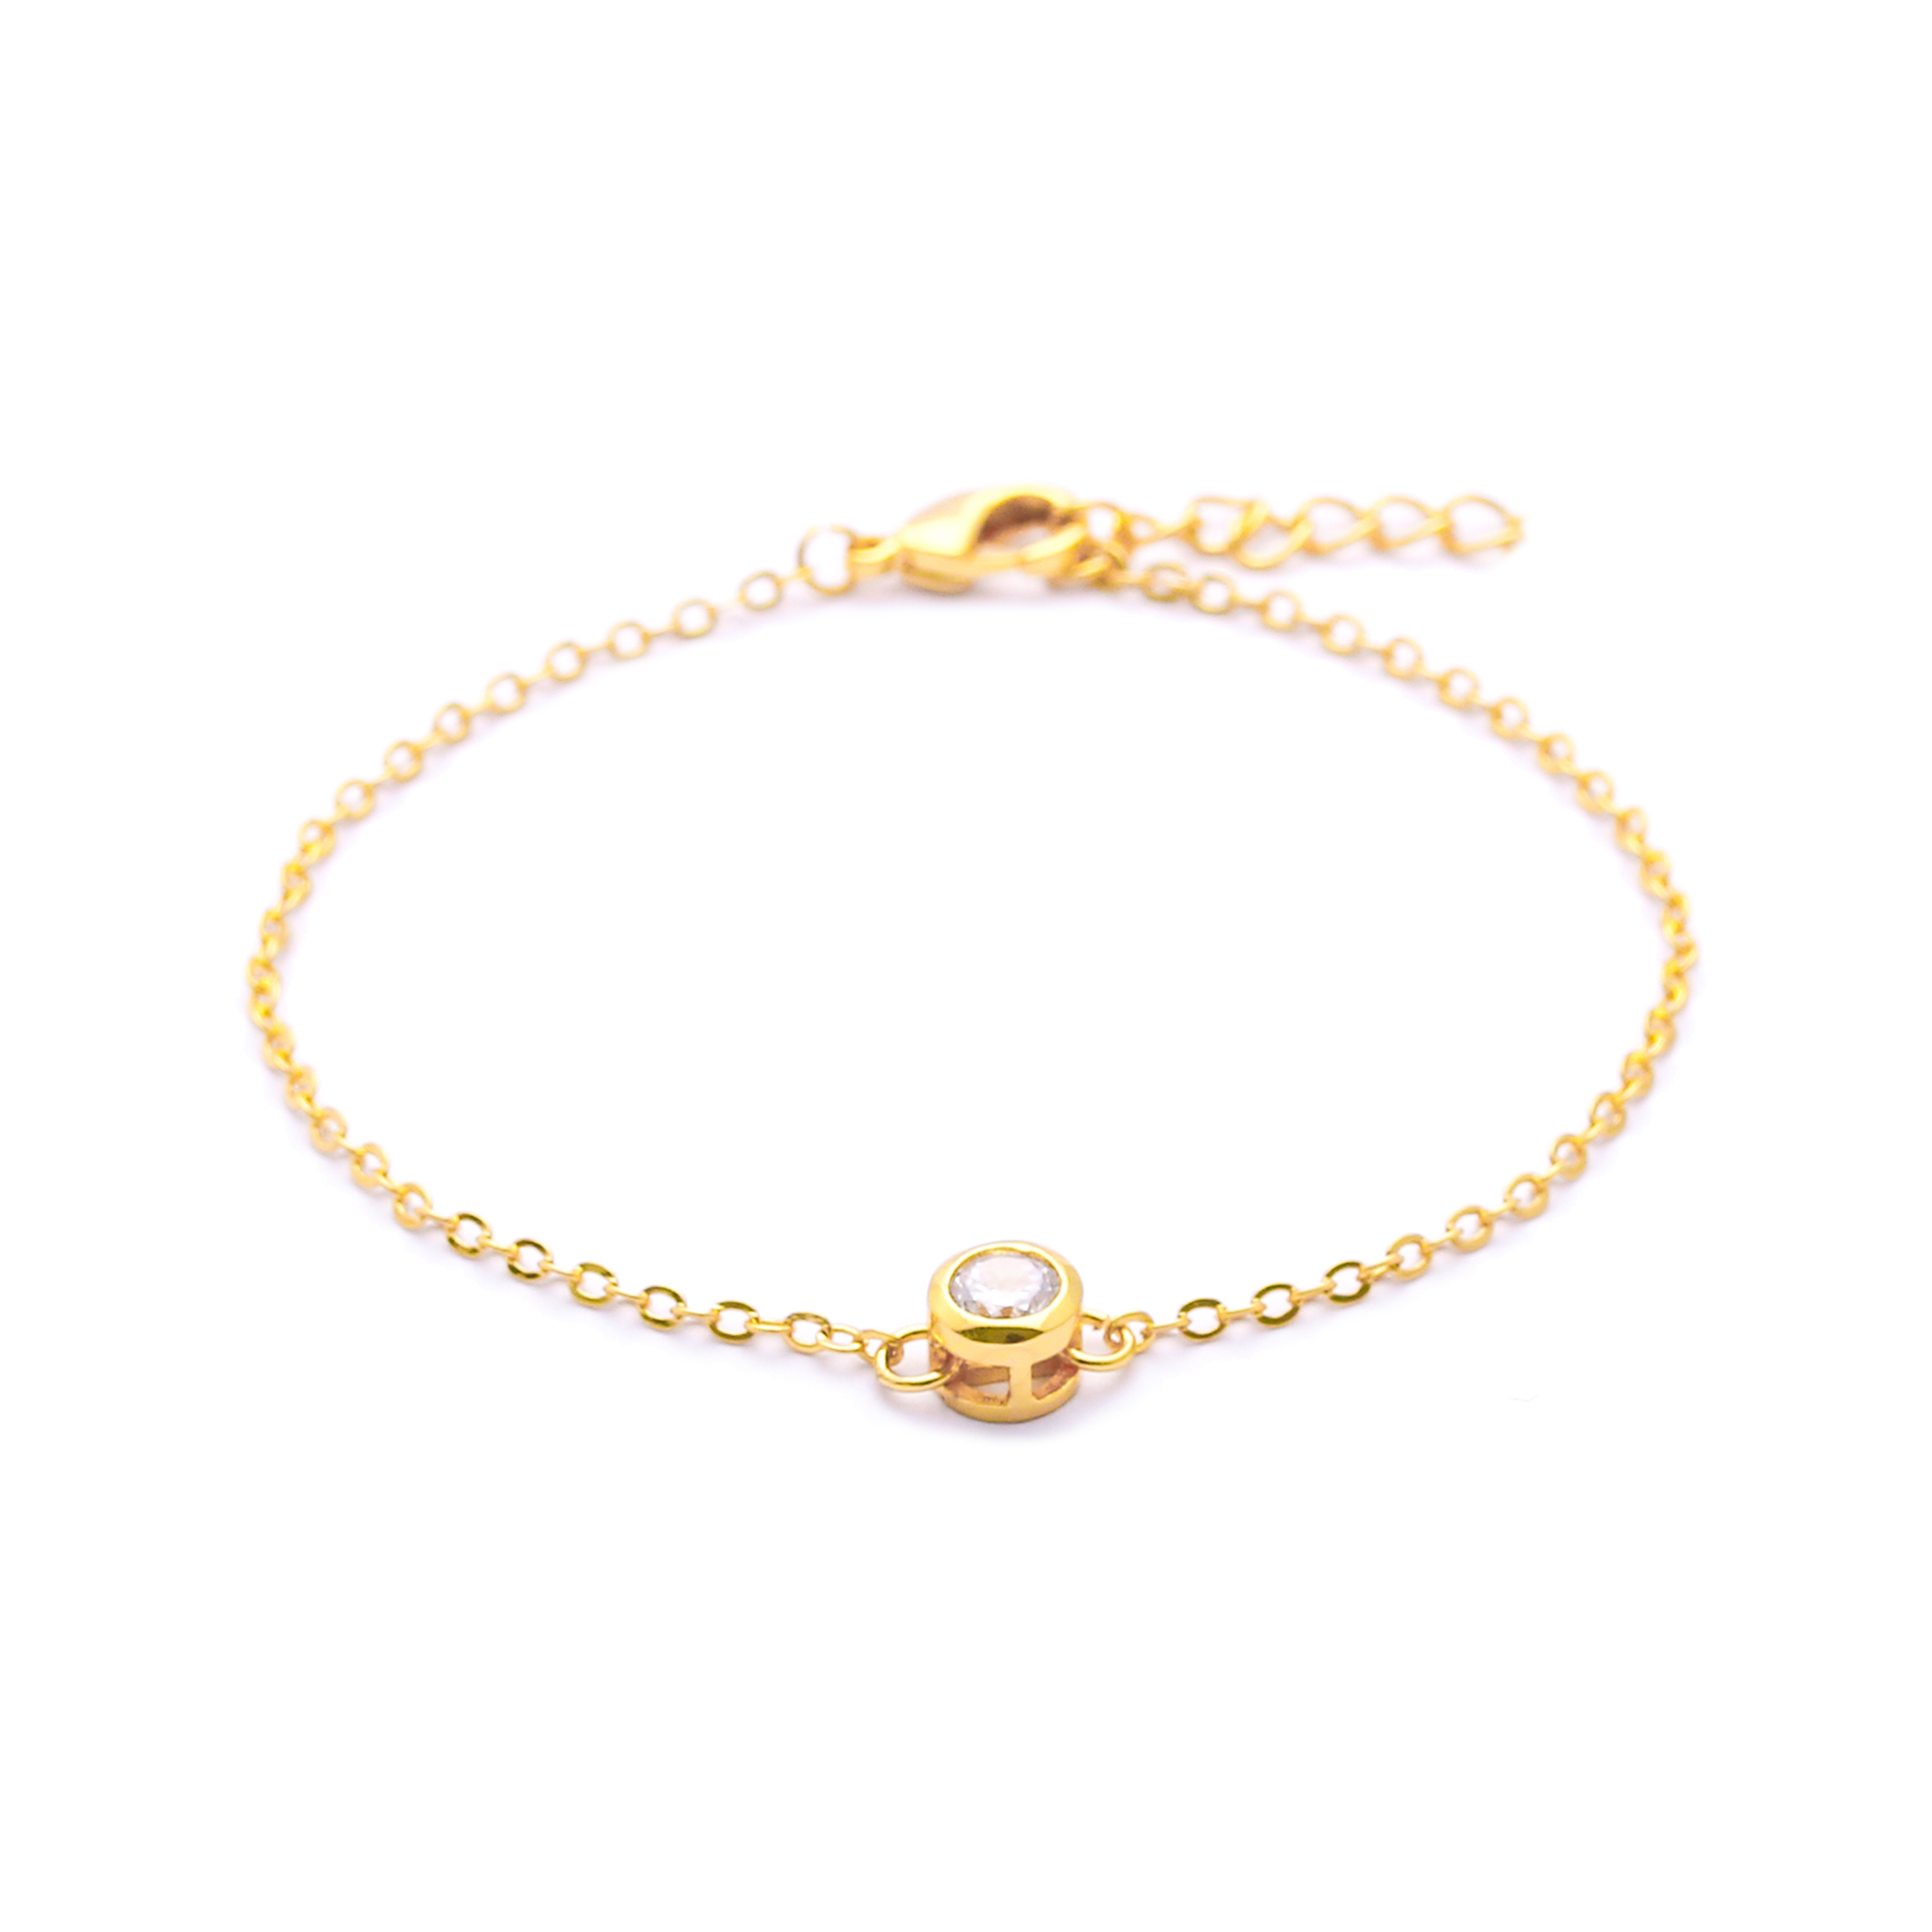 product black gold overstock jewelry ankle hills bracelet today free anklet shipping rose watches